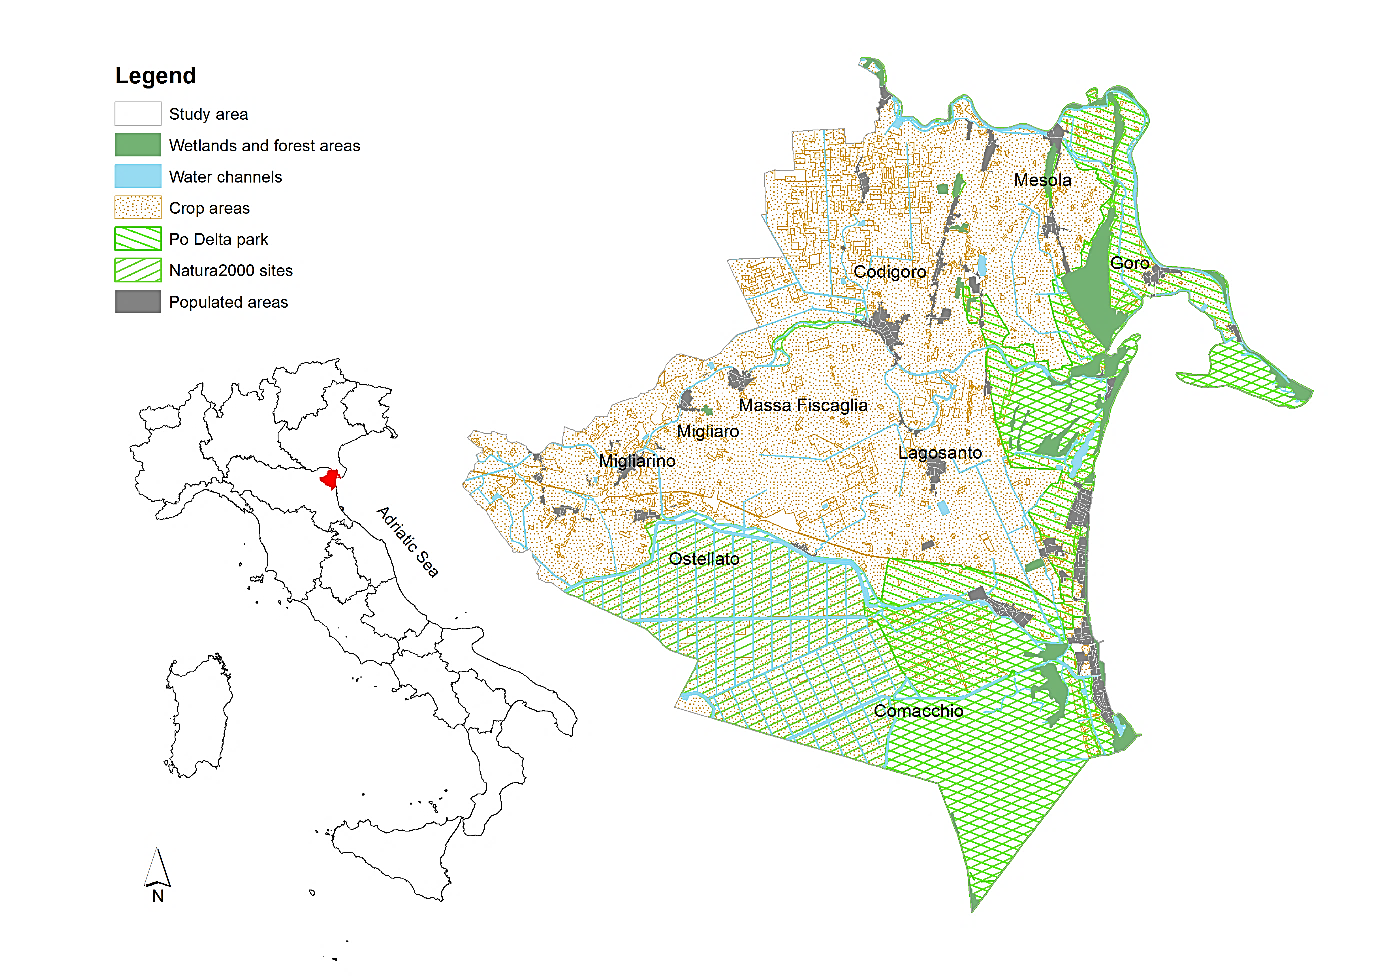 Location and main landscape composition of the eastern lowlands of Ferrara, northeast Emilia-Romagna